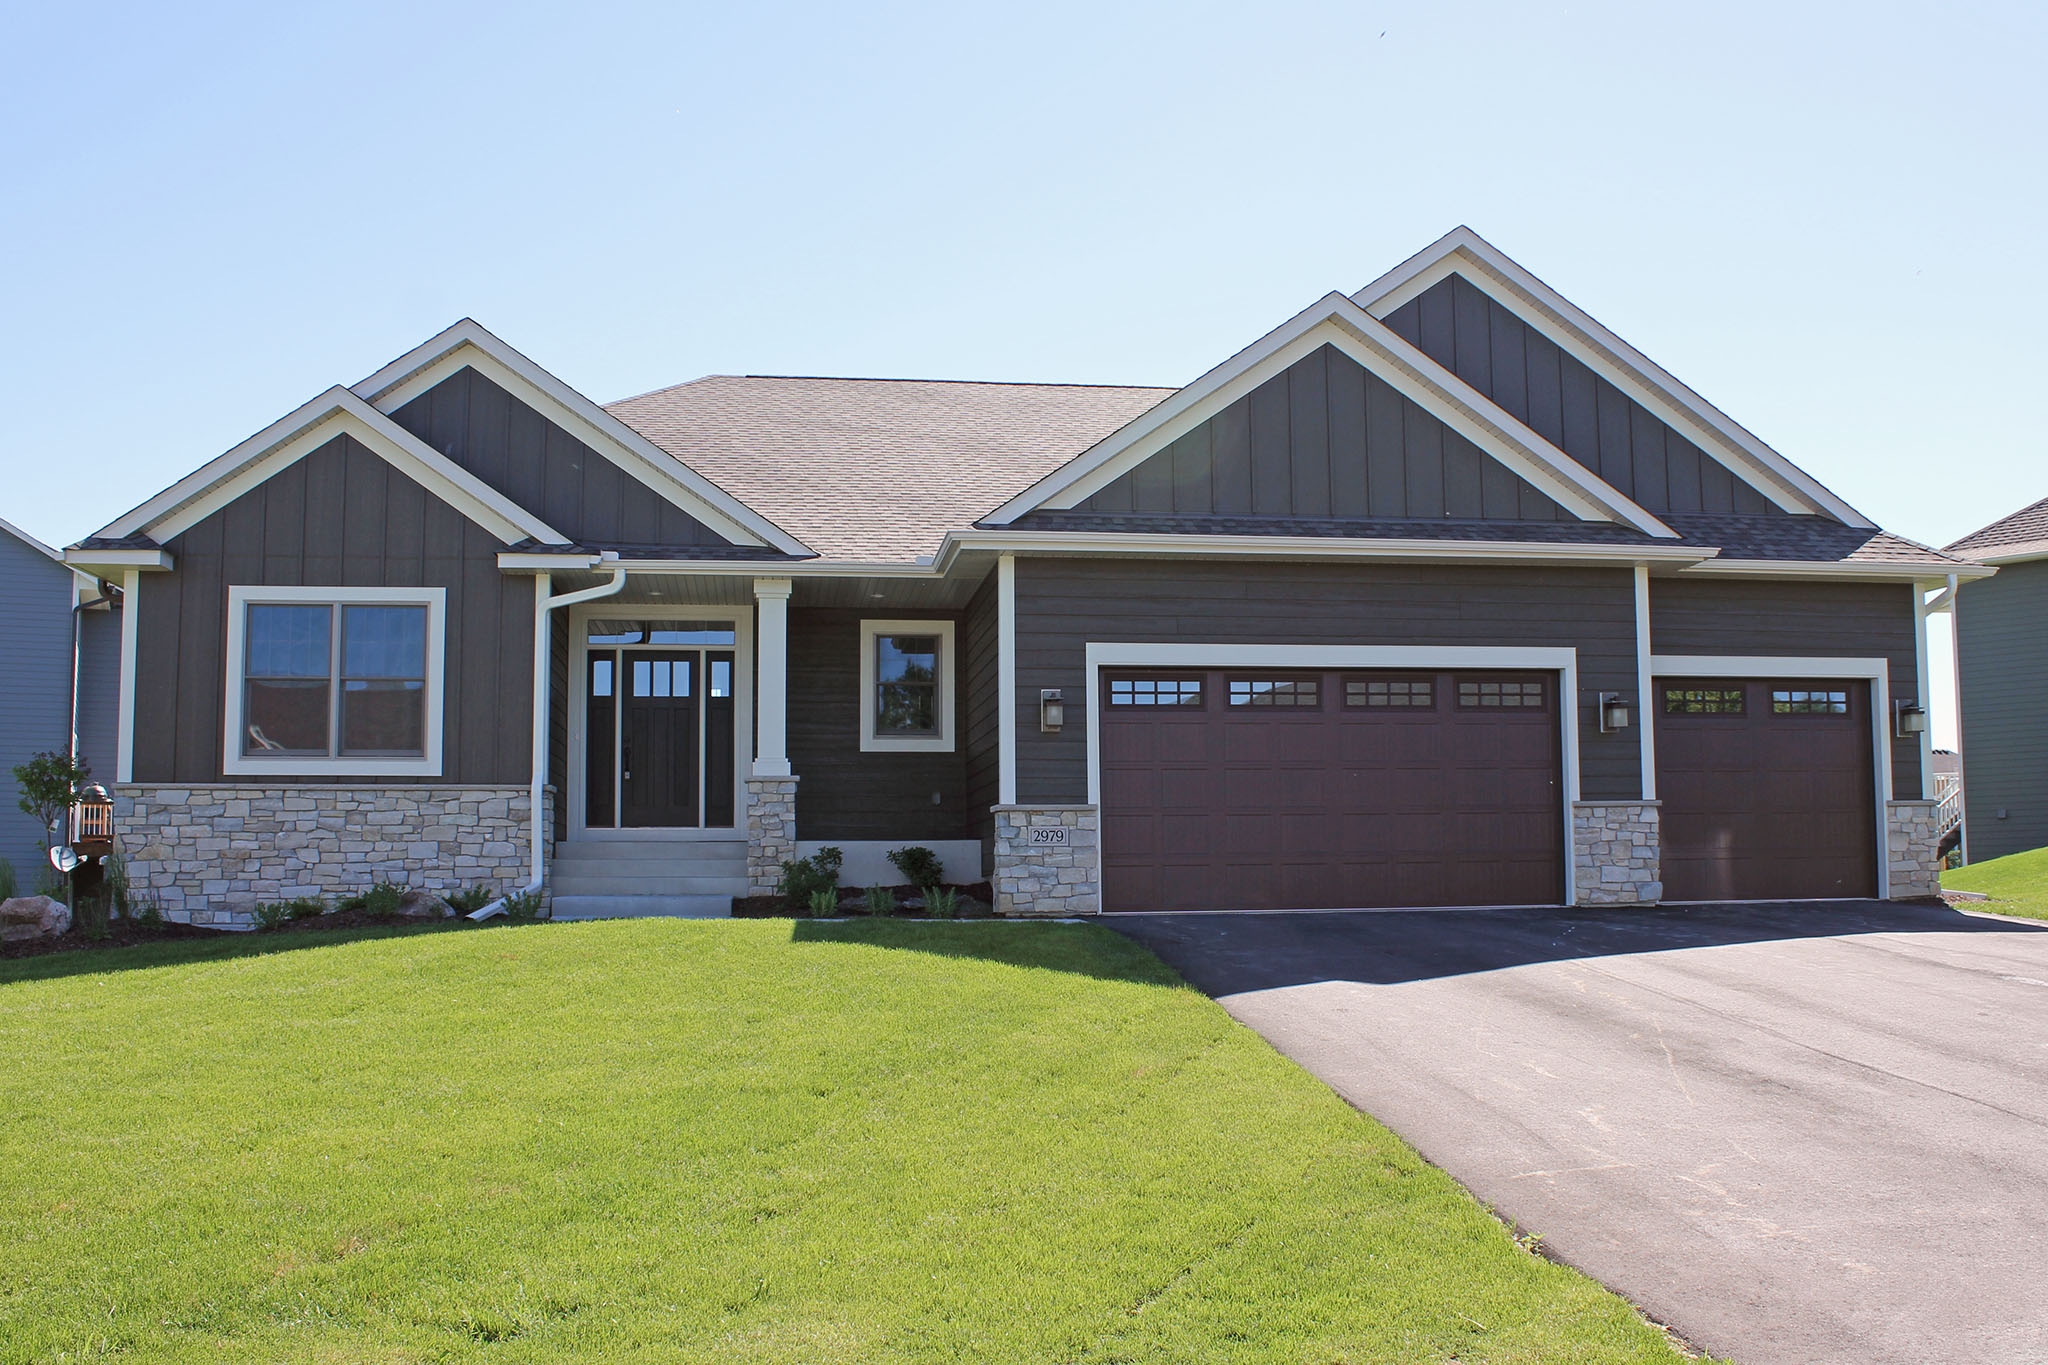 Three-stall garage rambler with stone wainscoat, board and batten siding and wide accent trim